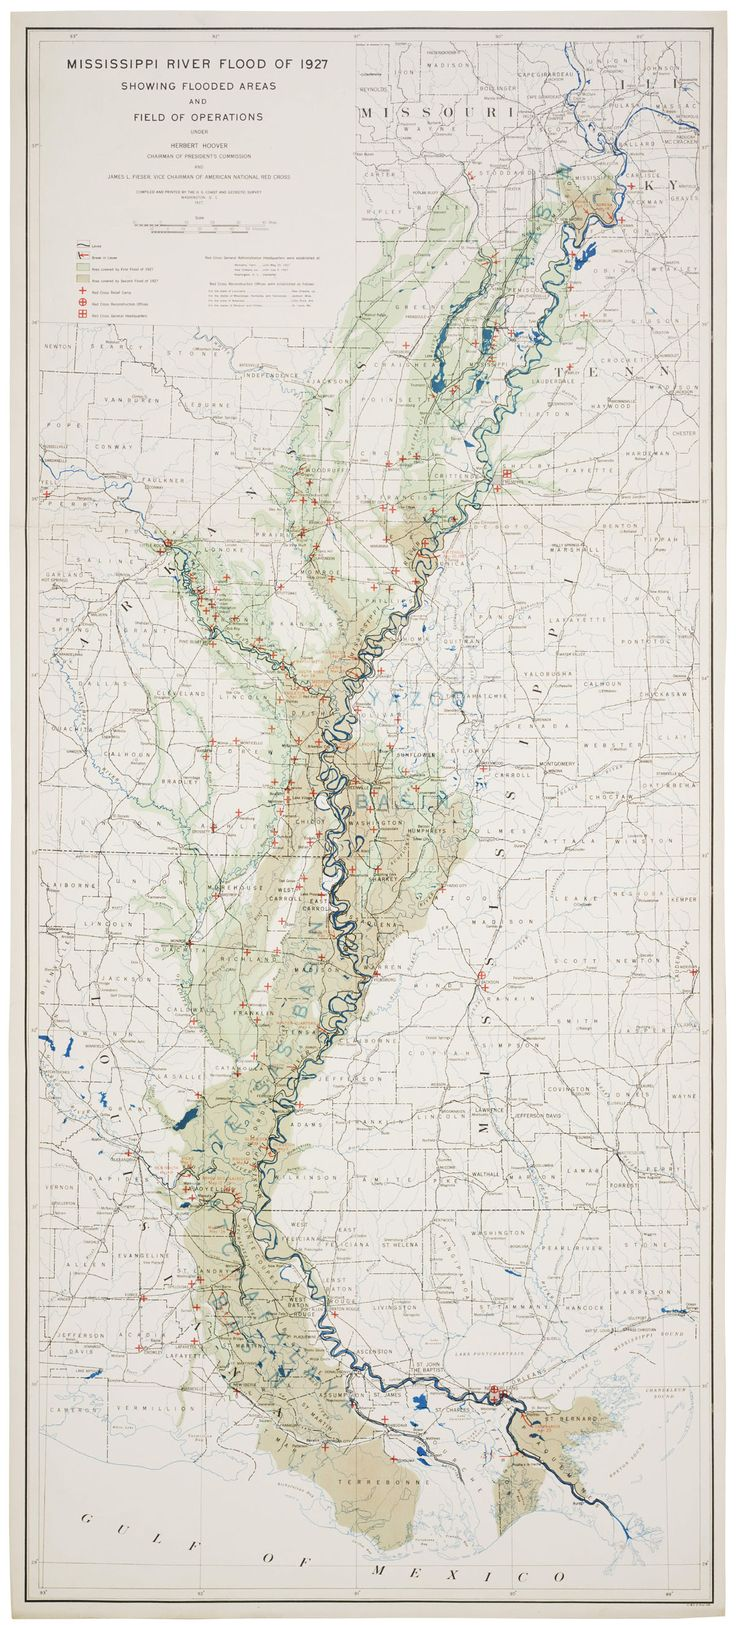 Best Images About Kaskaskia On Pinterest Louisiana Native - Map of us after new madrid earthquake